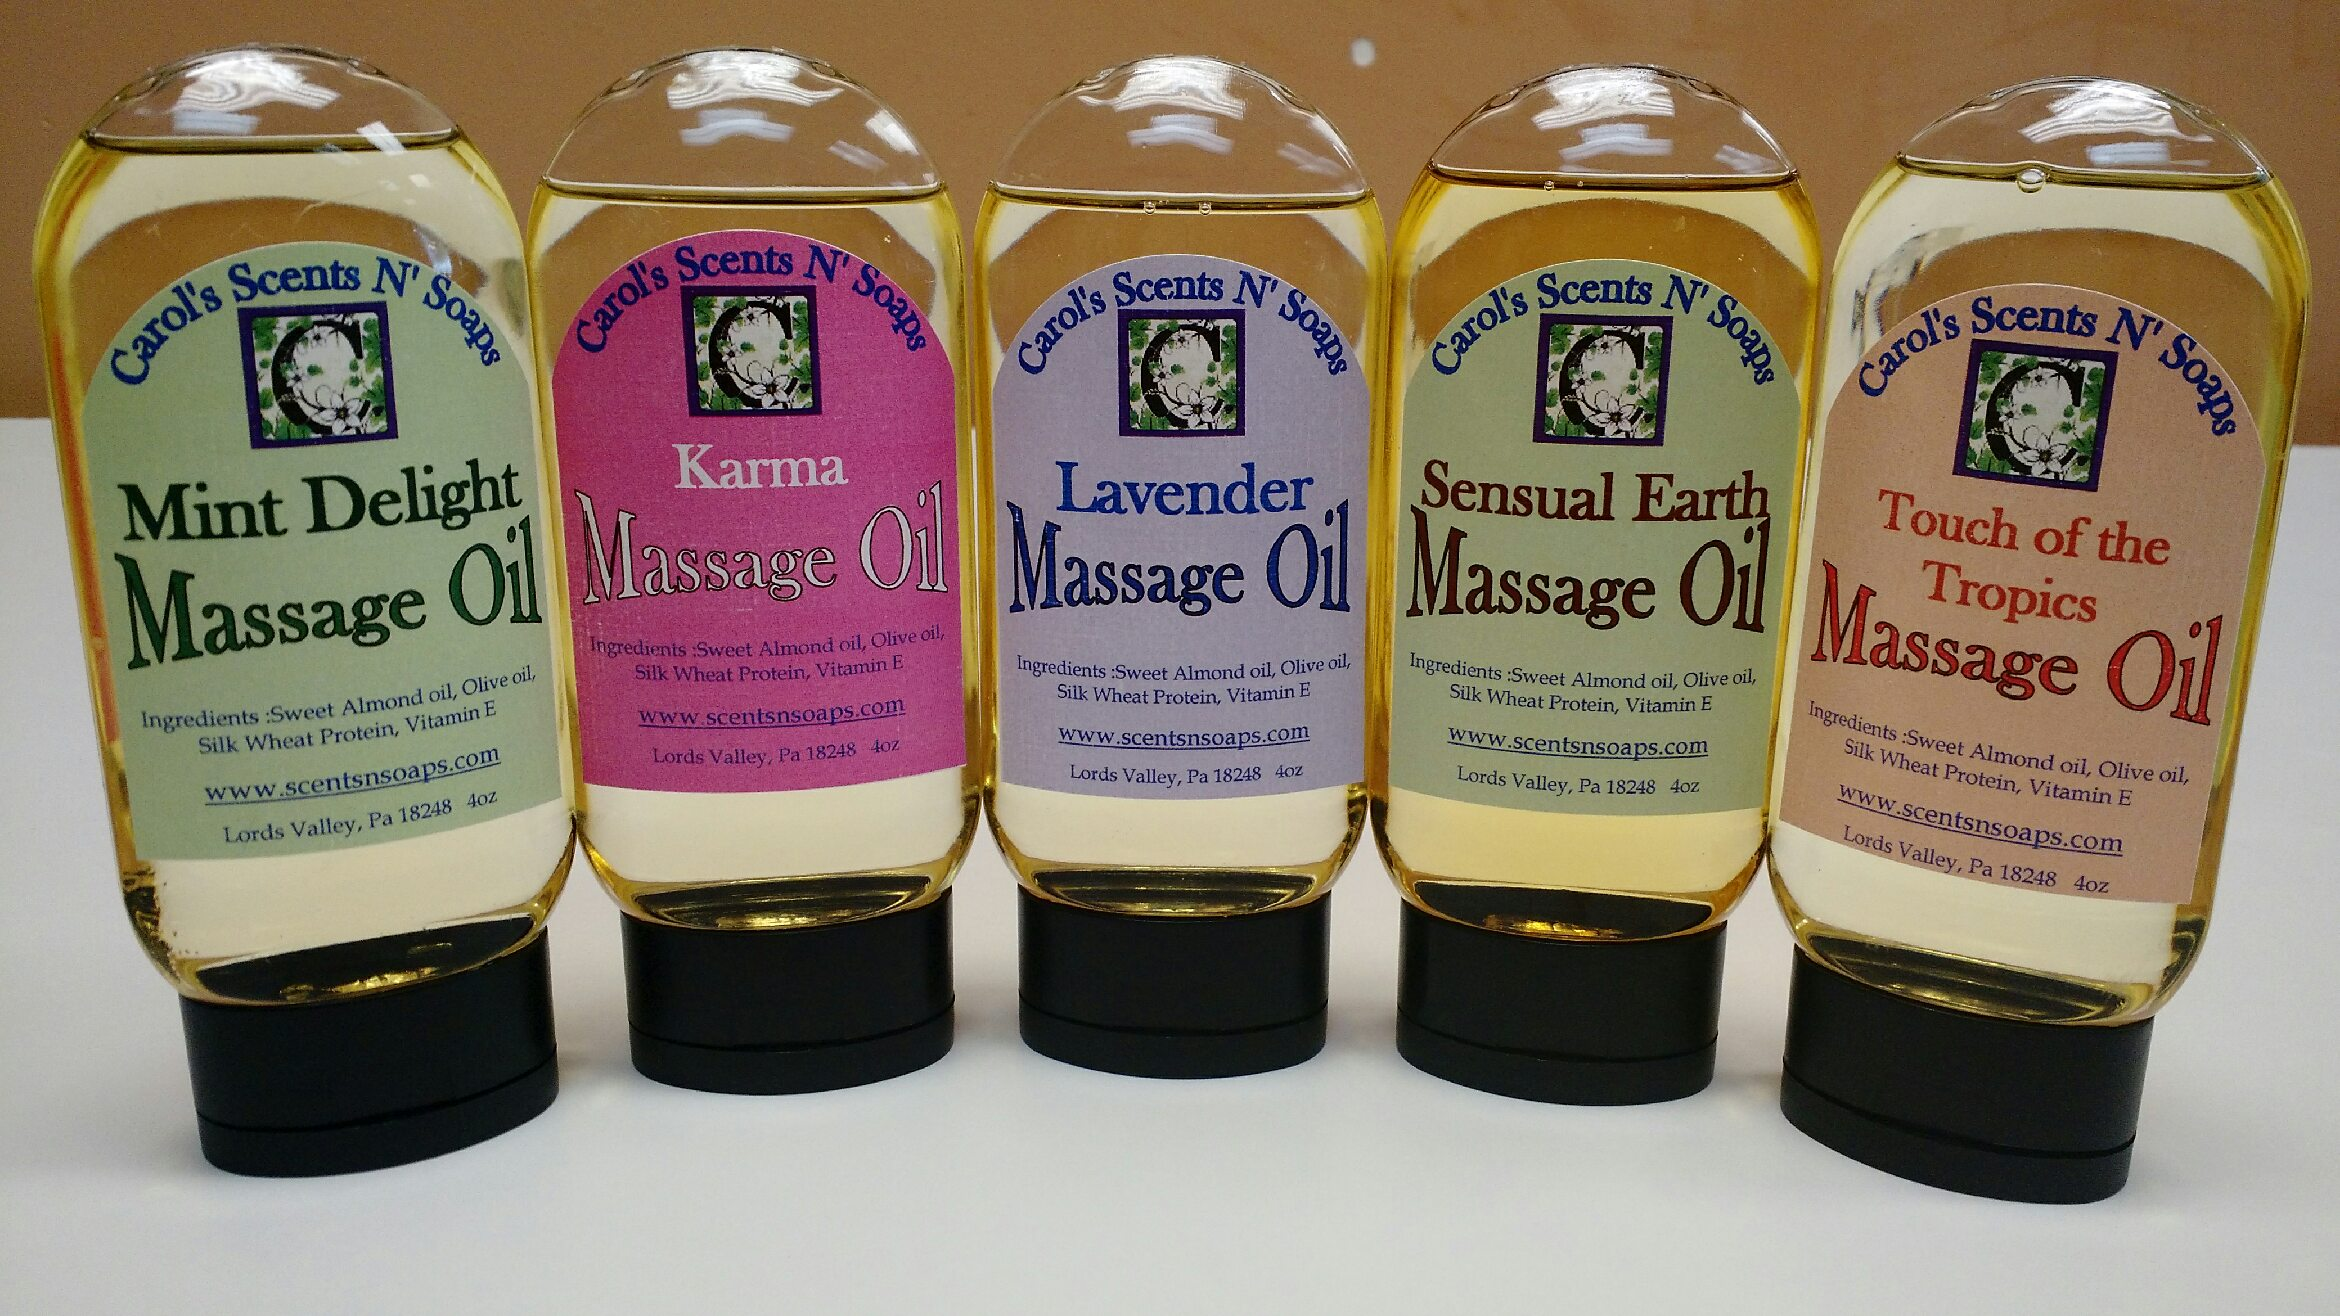 Scented Massage Oils